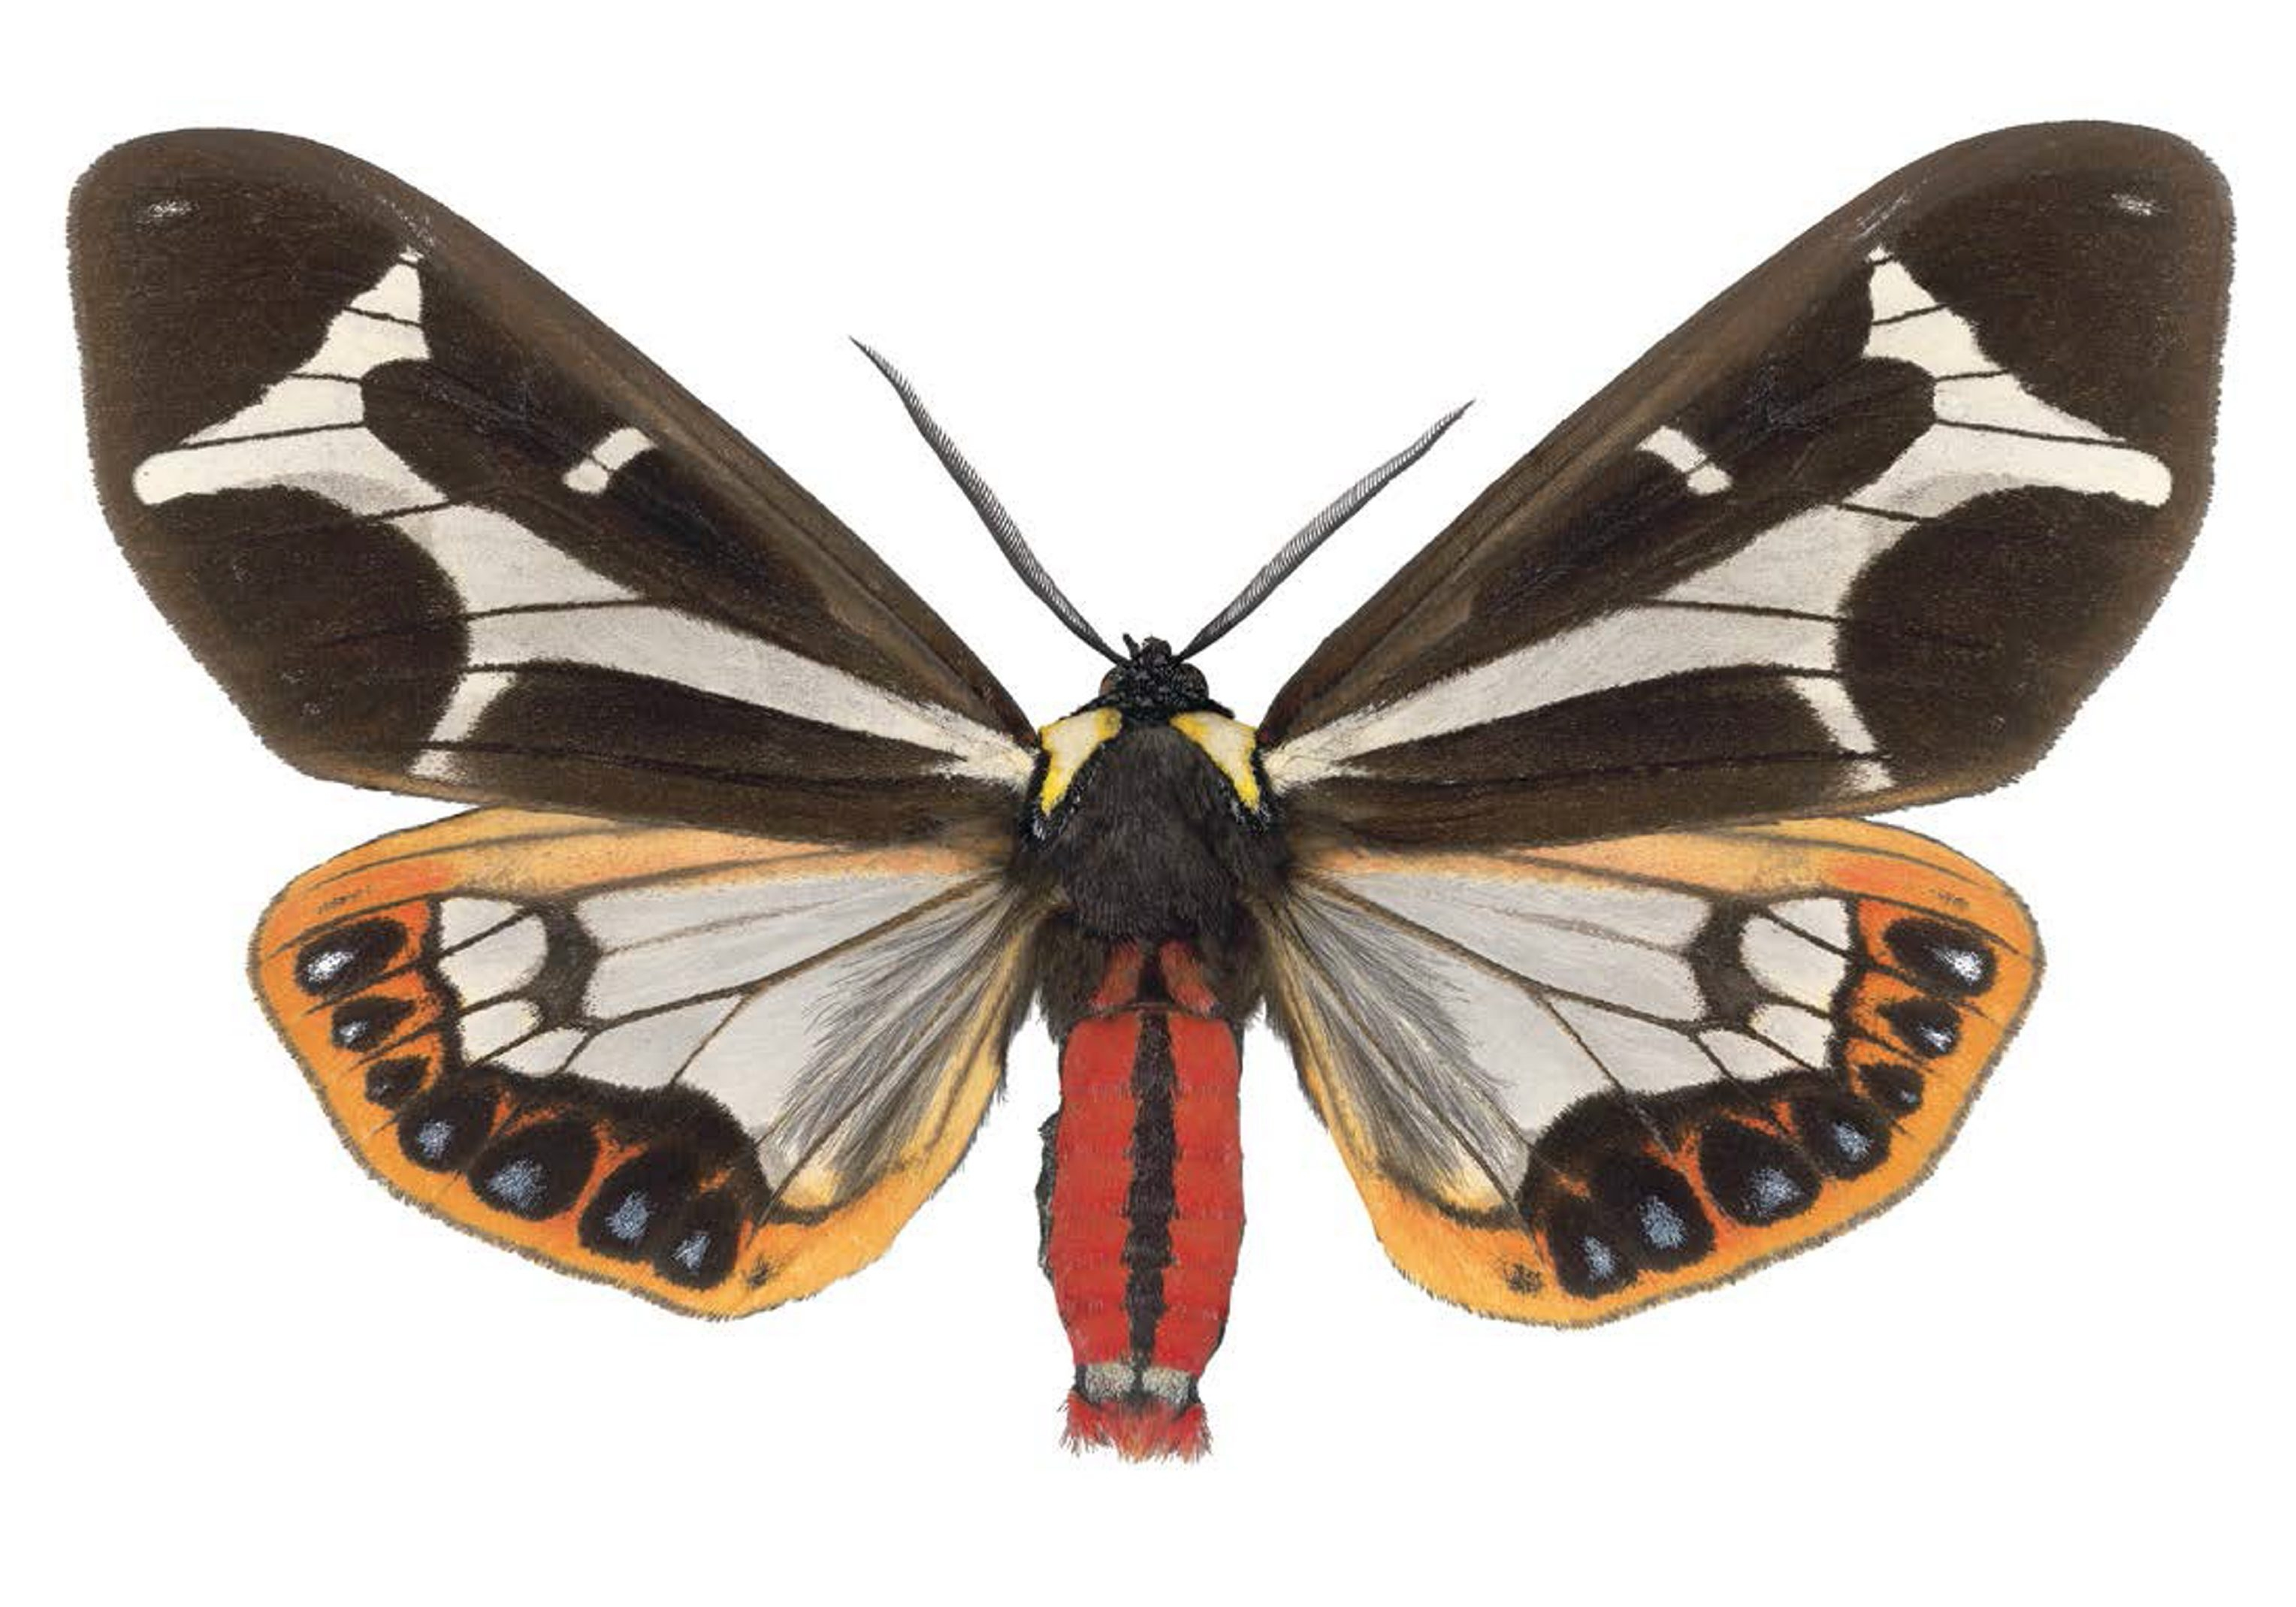 """""""Dysschema mariamne ma,"""" a high-resolution scan of a moth, is on view in Indigo Art's exhibition """"Mothing: Life Beyond the Edge of Awareness."""""""